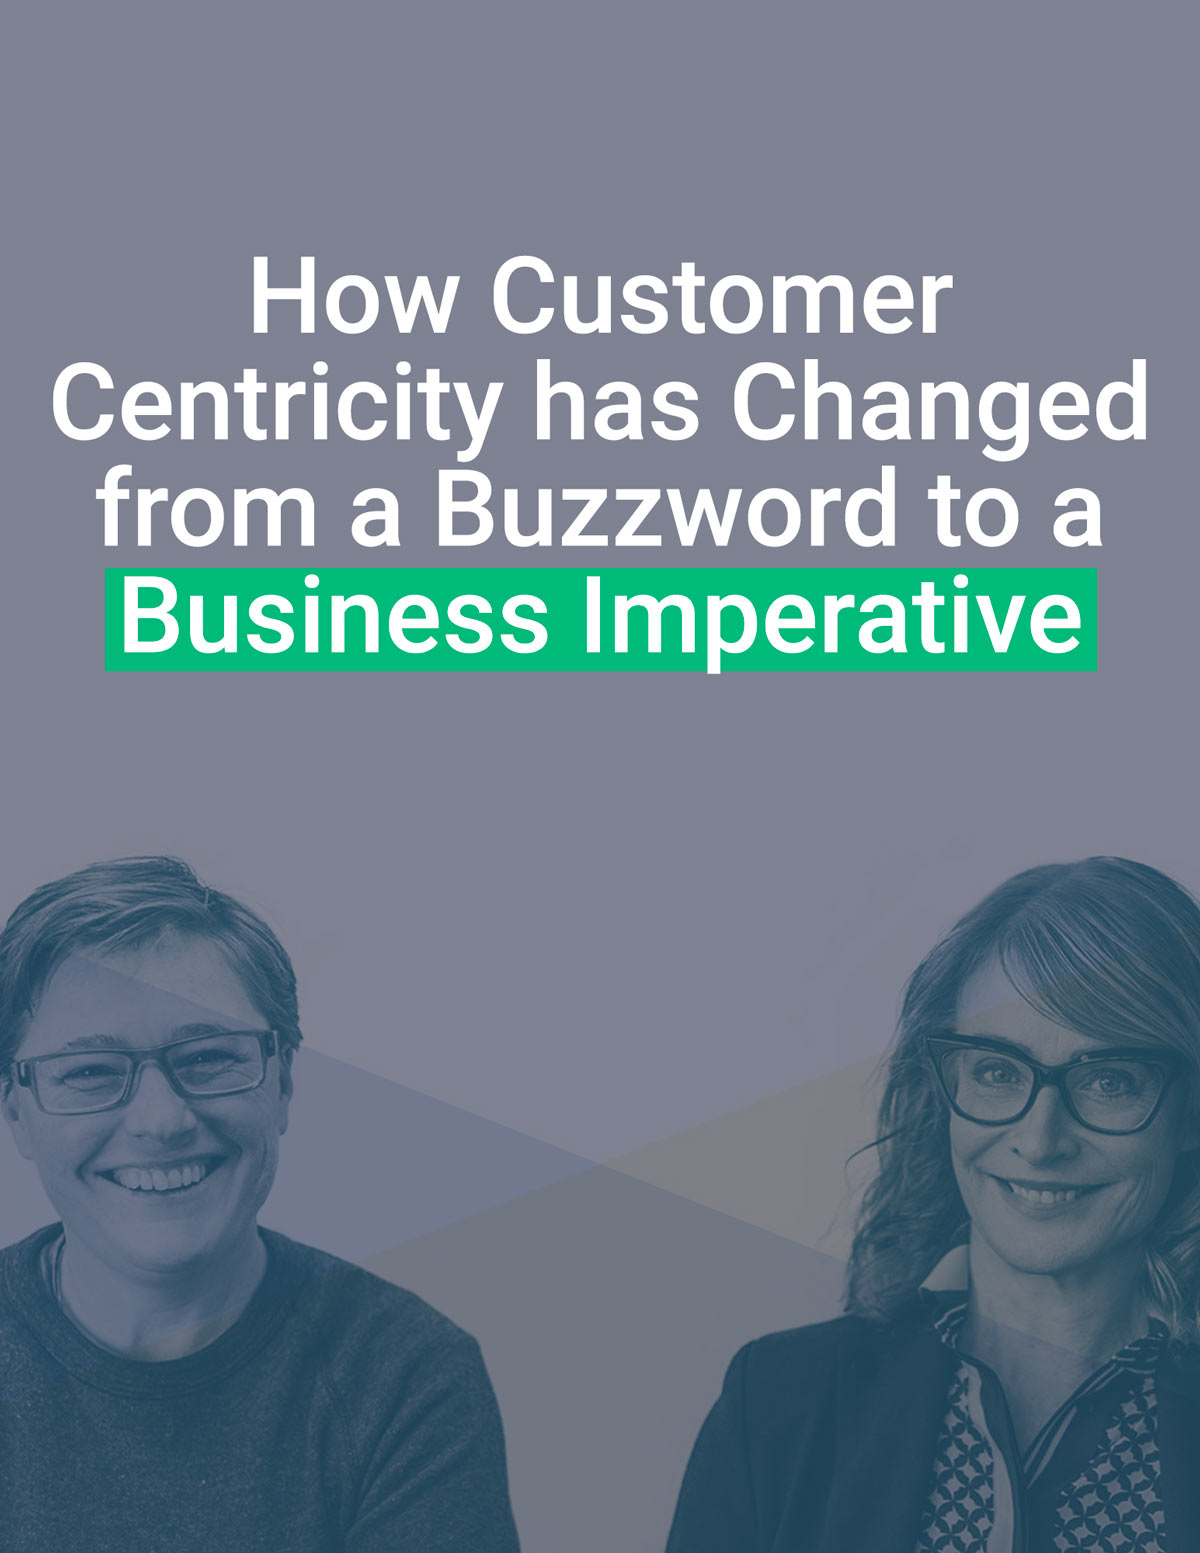 How Customer Centricity has Changed from a Buzzword to a Business Imperative